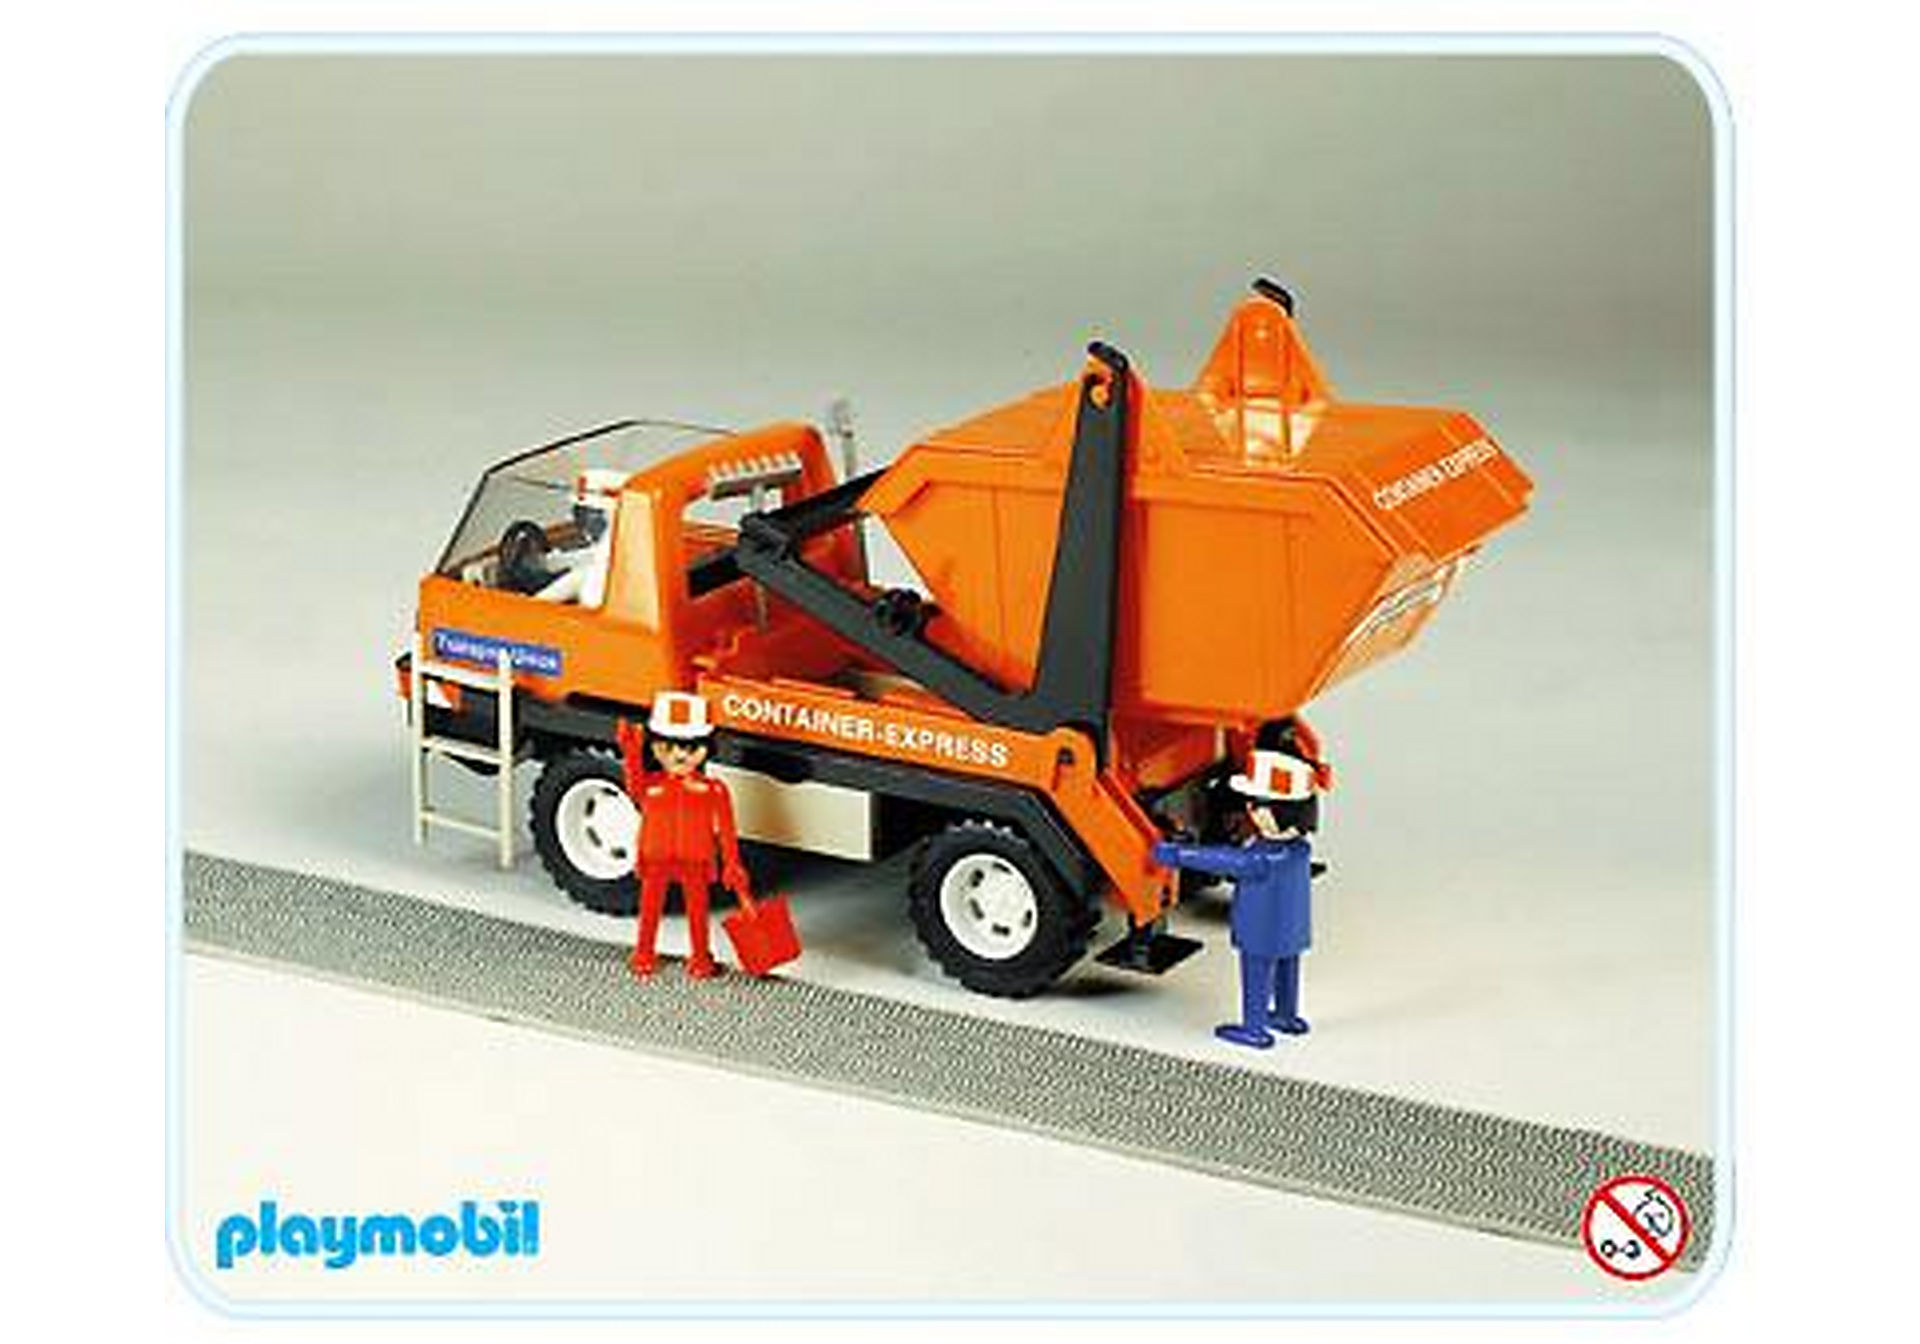 http://media.playmobil.com/i/playmobil/3471-A_product_detail/Camion container